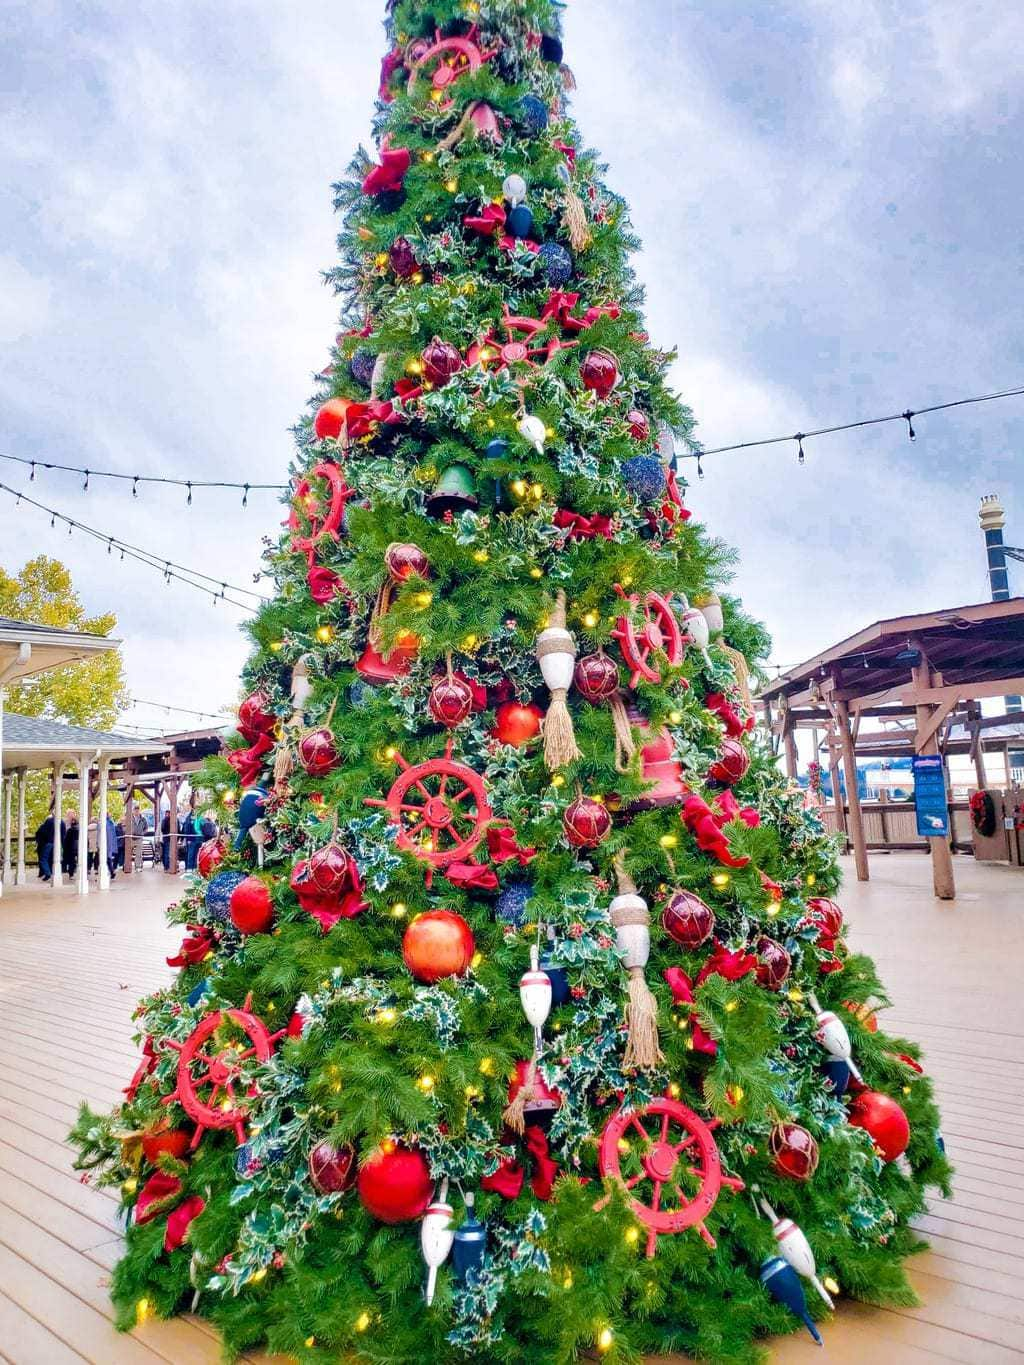 Explore the Magic of Christmas With The Showboat Branson Belle and Silver Dollar City